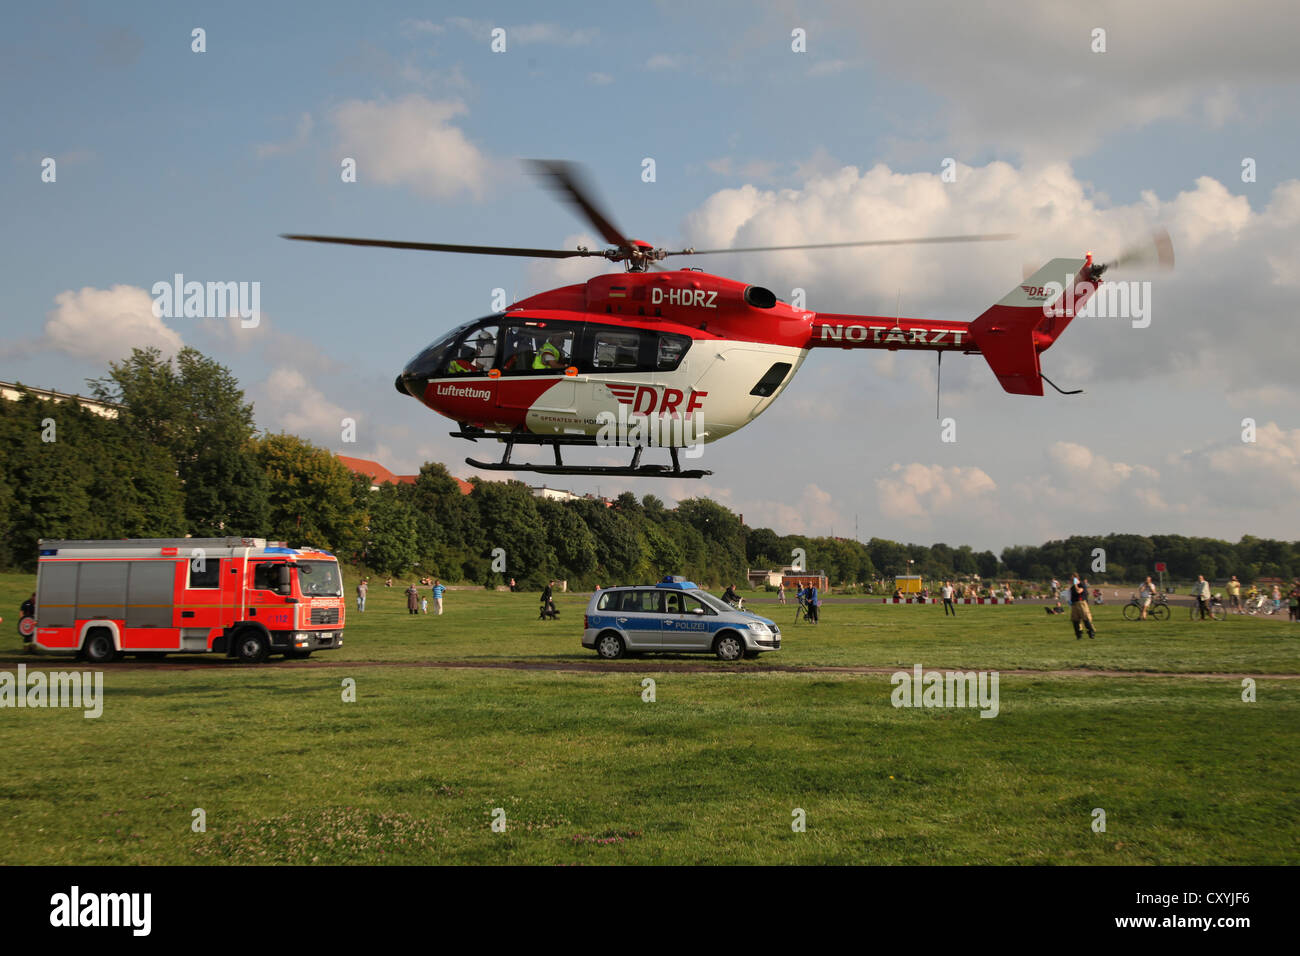 Air ambulance in action, after sustaining severe burns, a 15-year-old girl is flown by rescue helicopter from Tempelhof - Stock Image